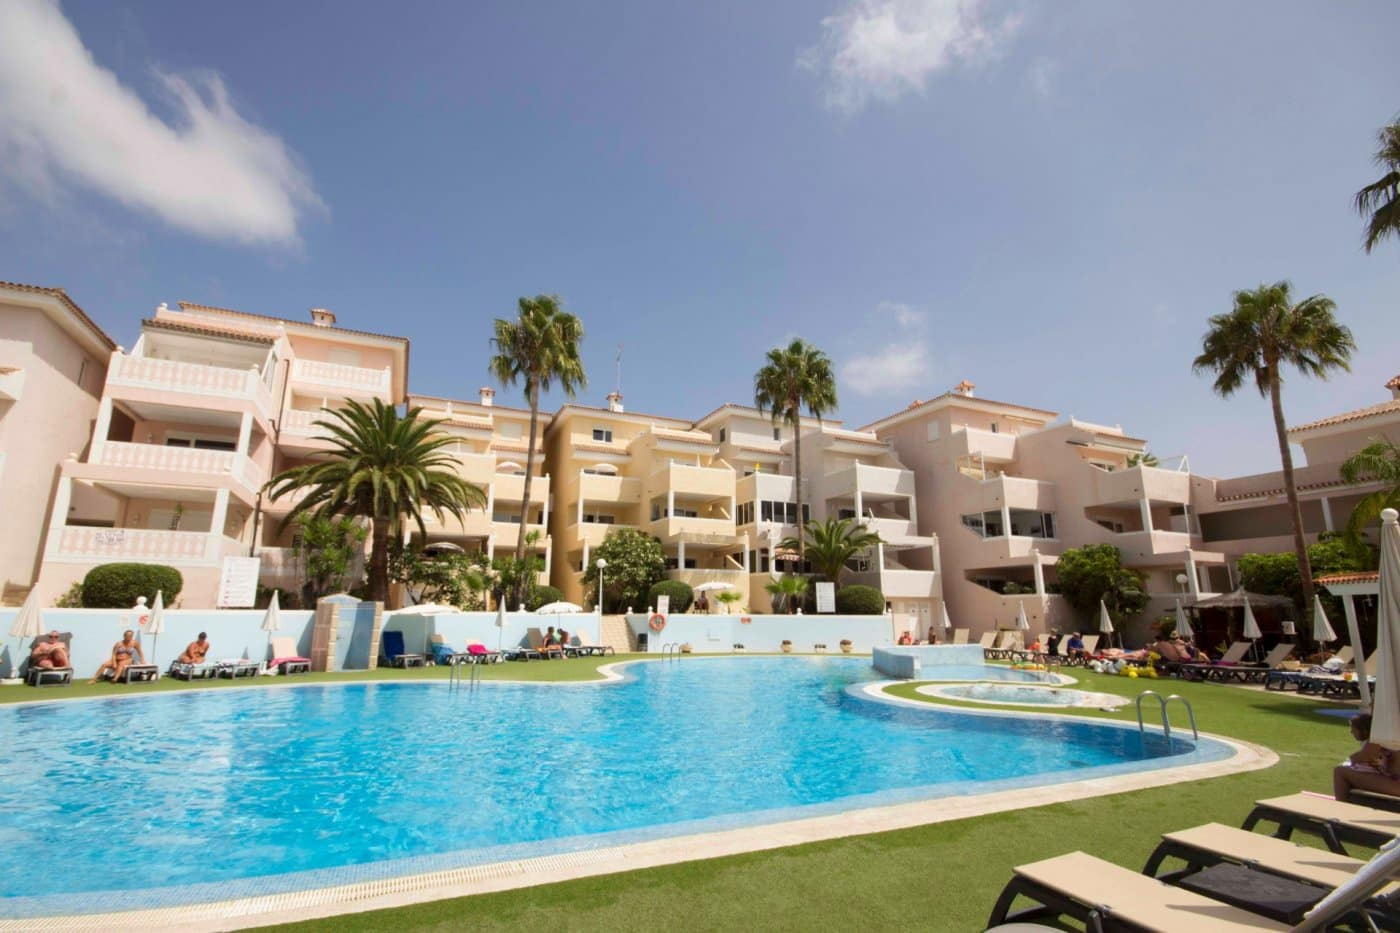 1 bedroom Apartment for sale in Chayofa with pool - € 149,900 (Ref: 6176350)